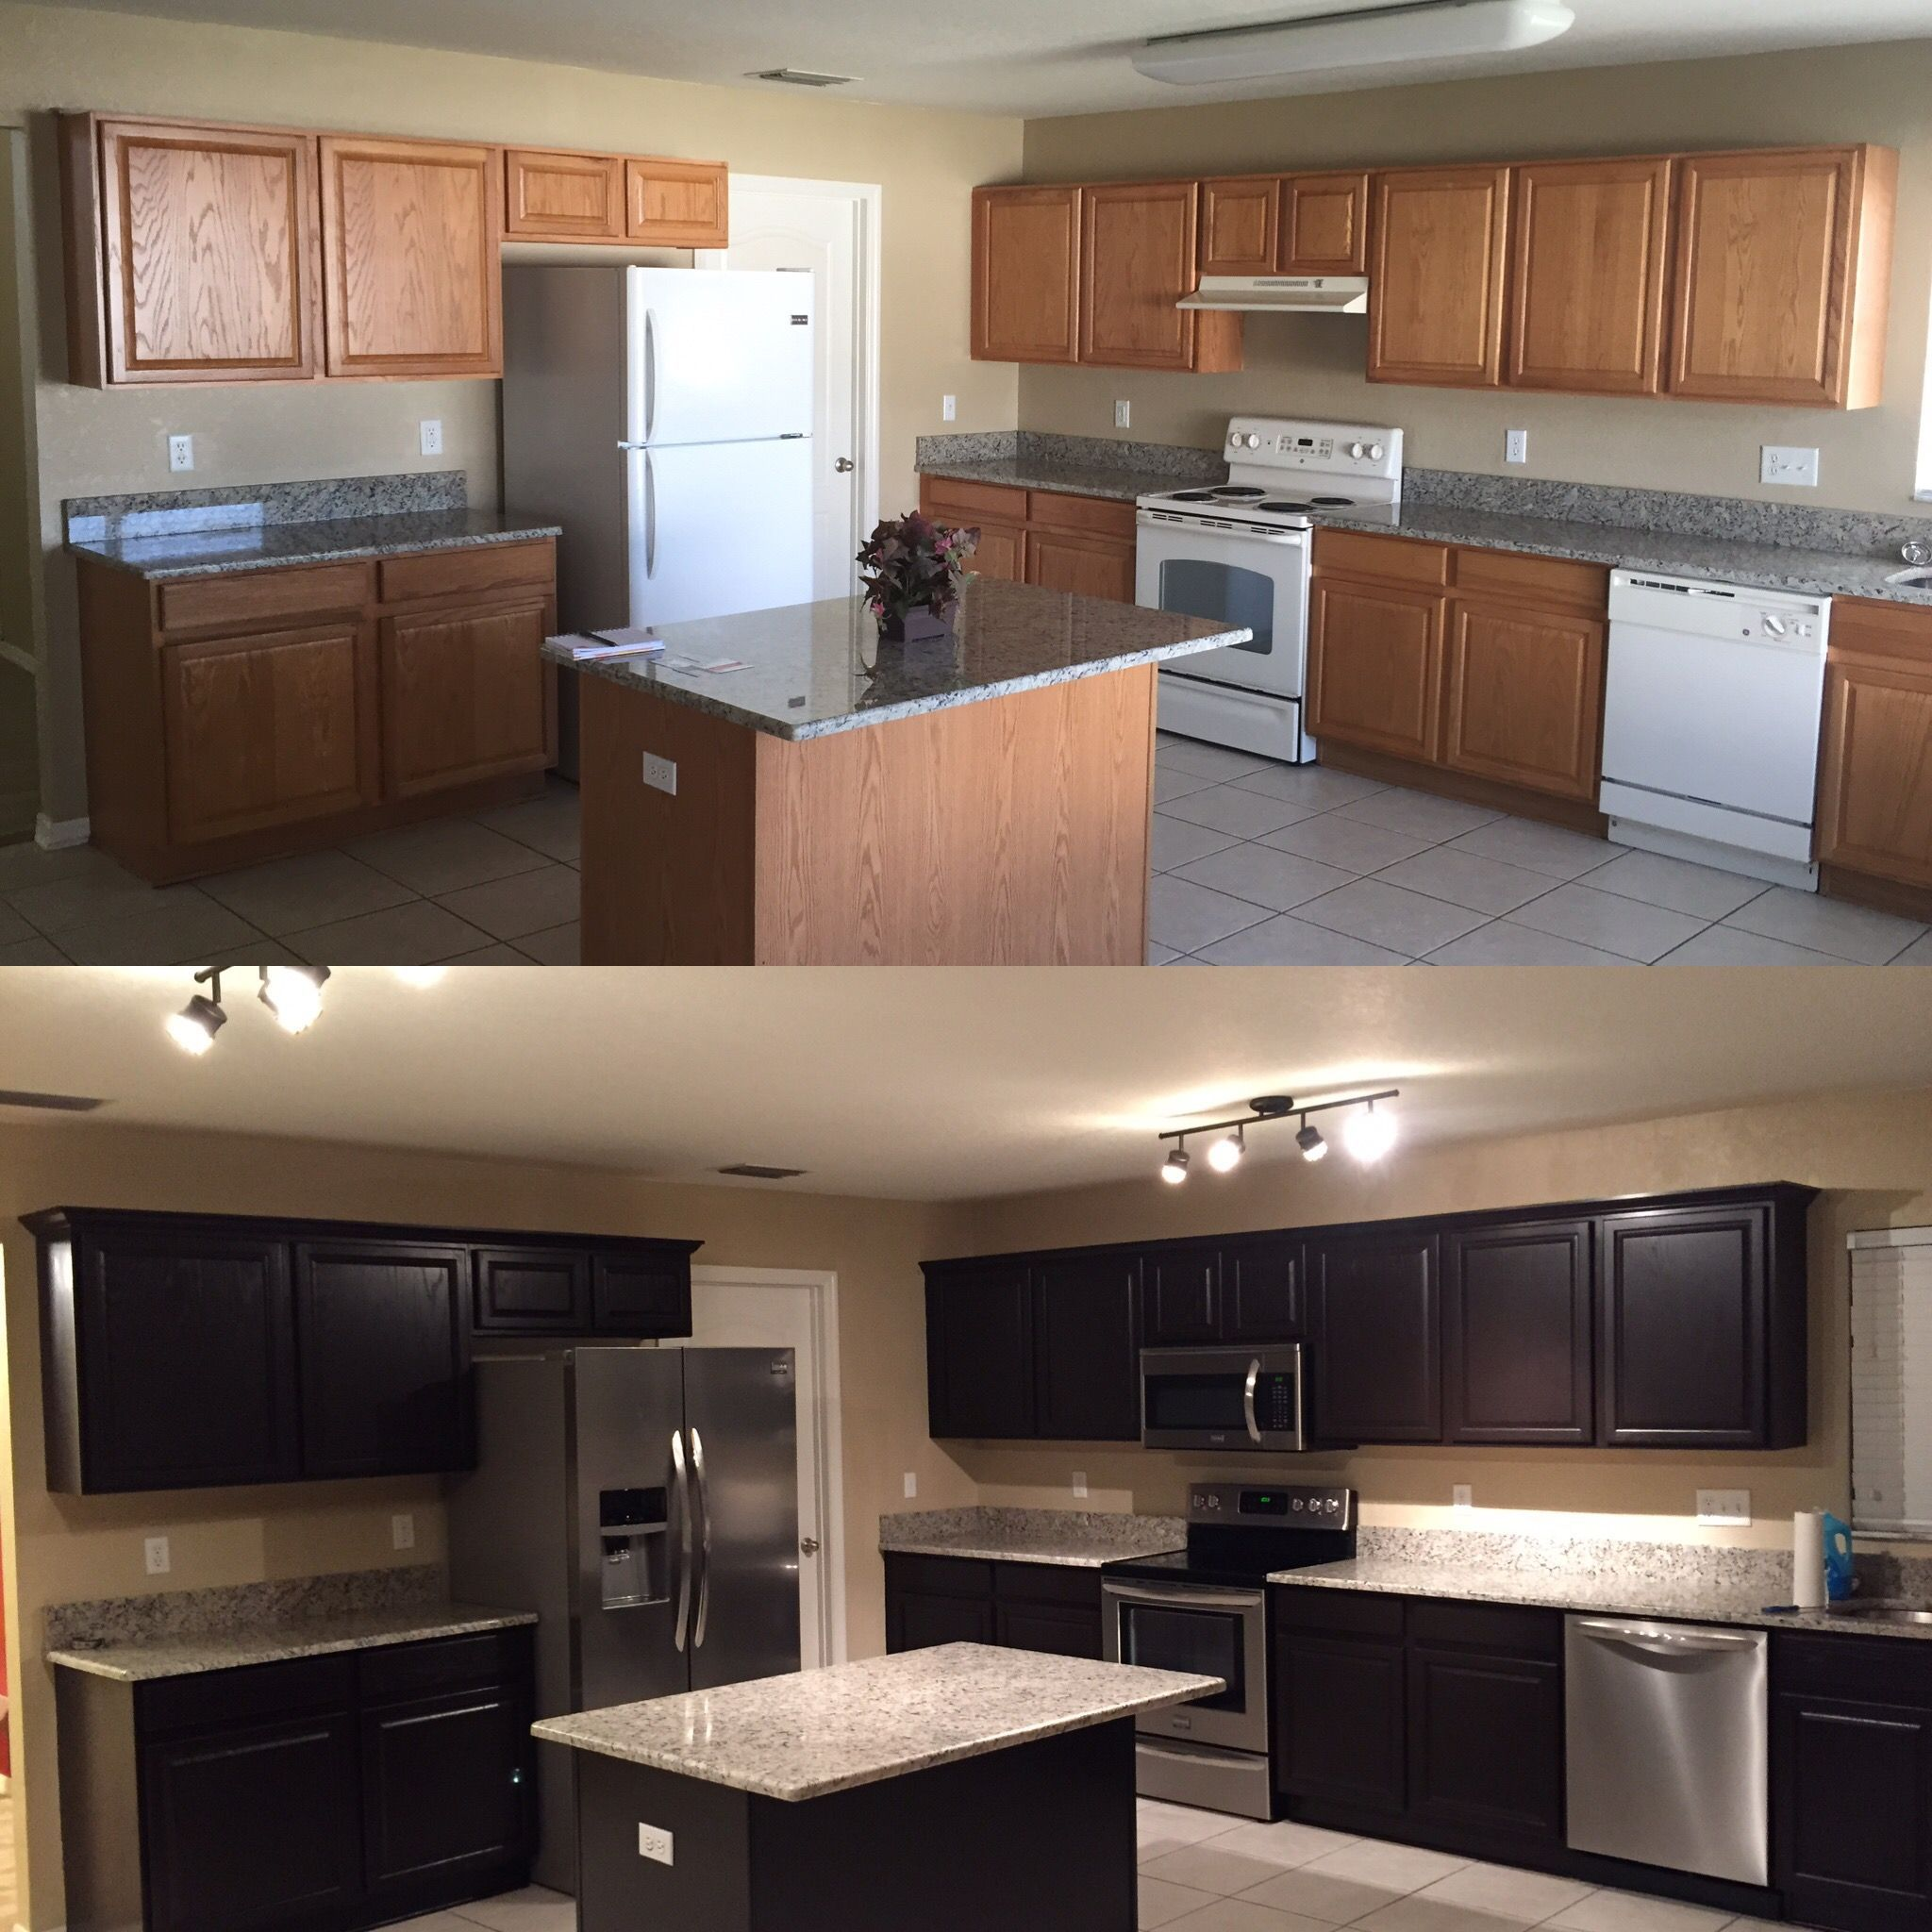 My DIY Kitchen remodel on the cheap..   Imgur kitchenremodelreddit   Cheap kitchen remodel ...